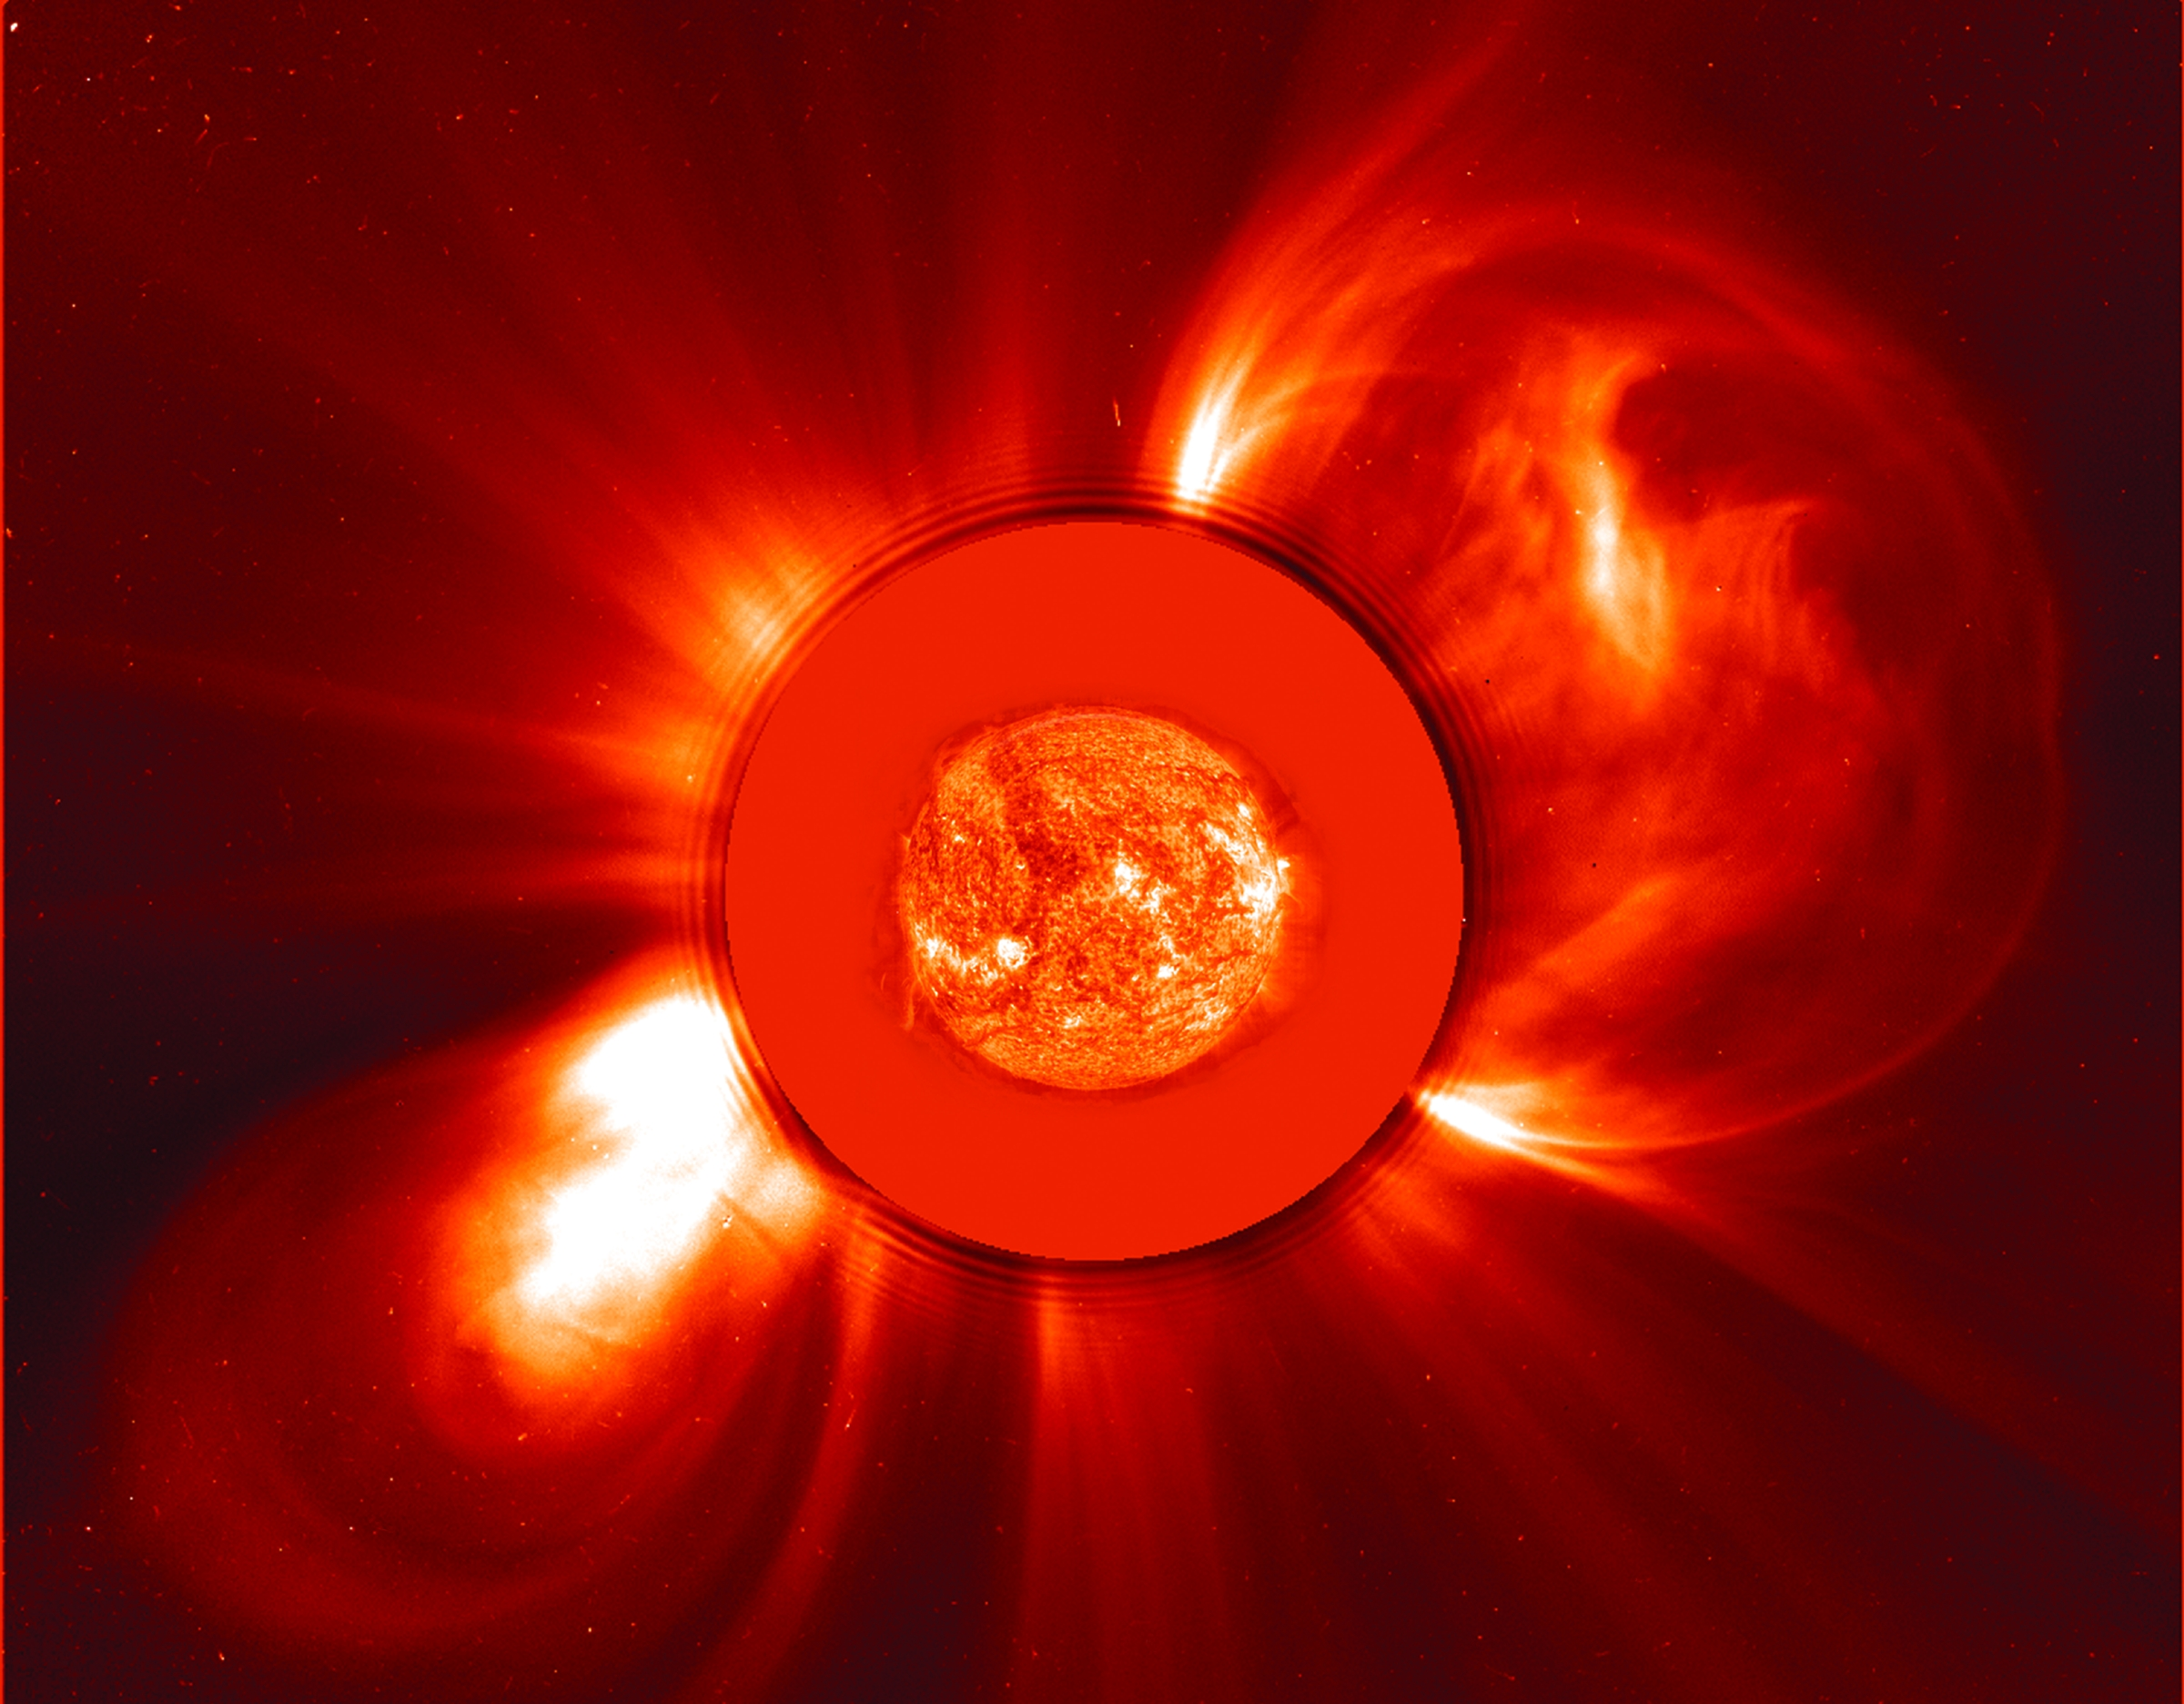 Celebrating 20 Years of the Solar and Heliospheric Observatory (SOHO)